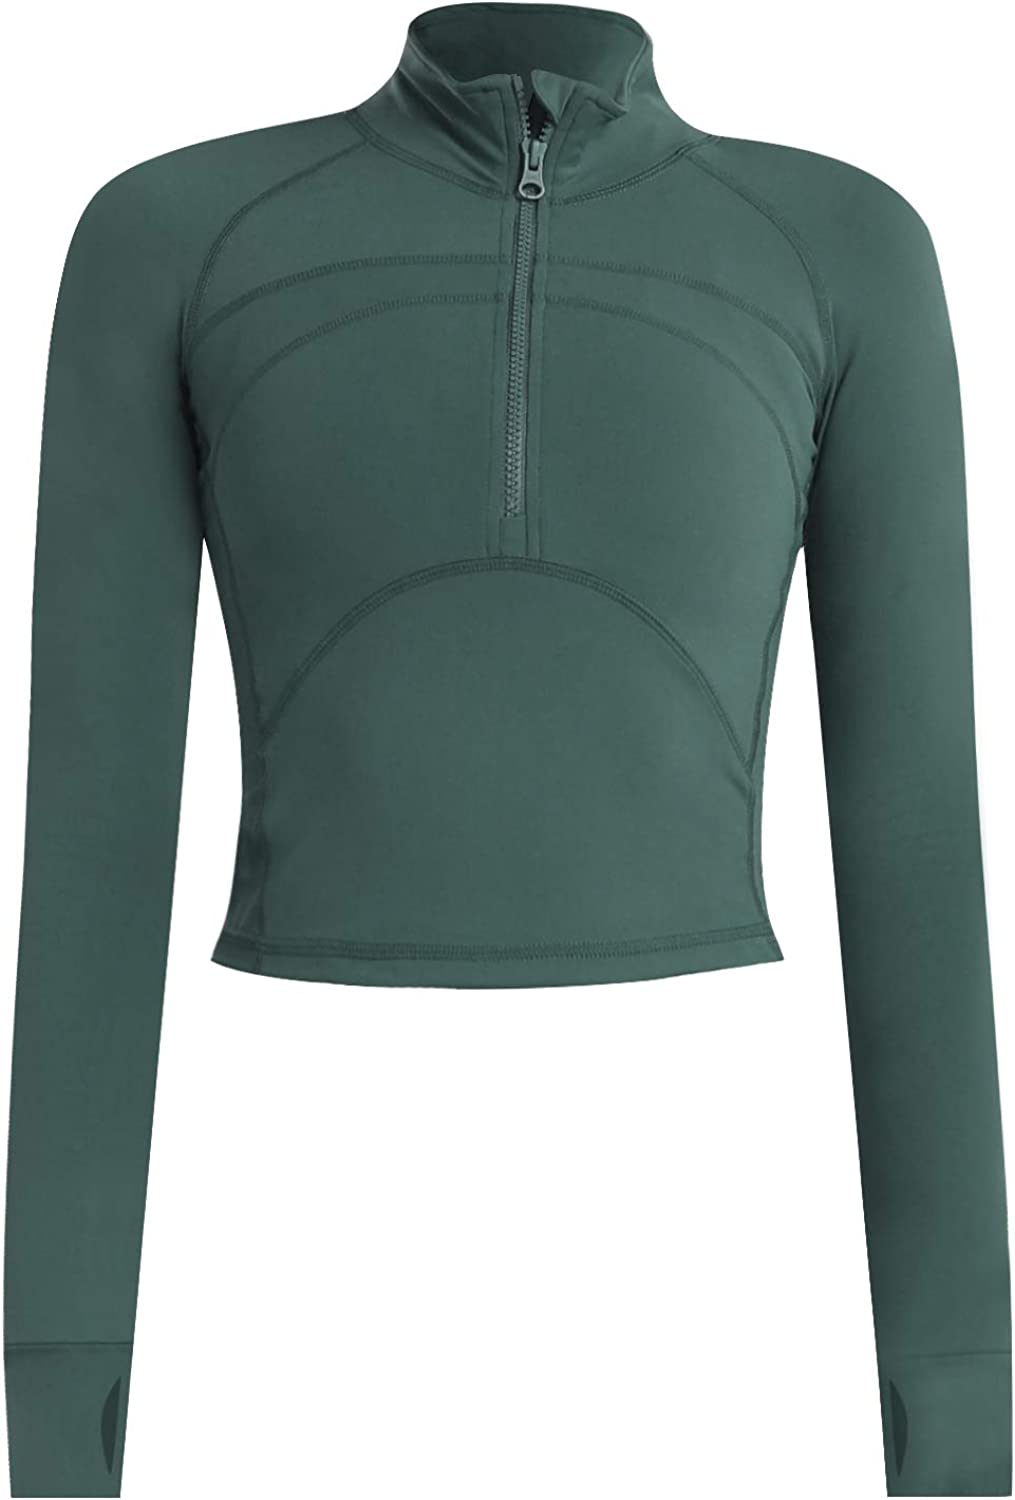 Women's 40% OFF Cheap Sale Cropped Workout Jacket 1 Running 2 Pullover Athletic Zip shopping